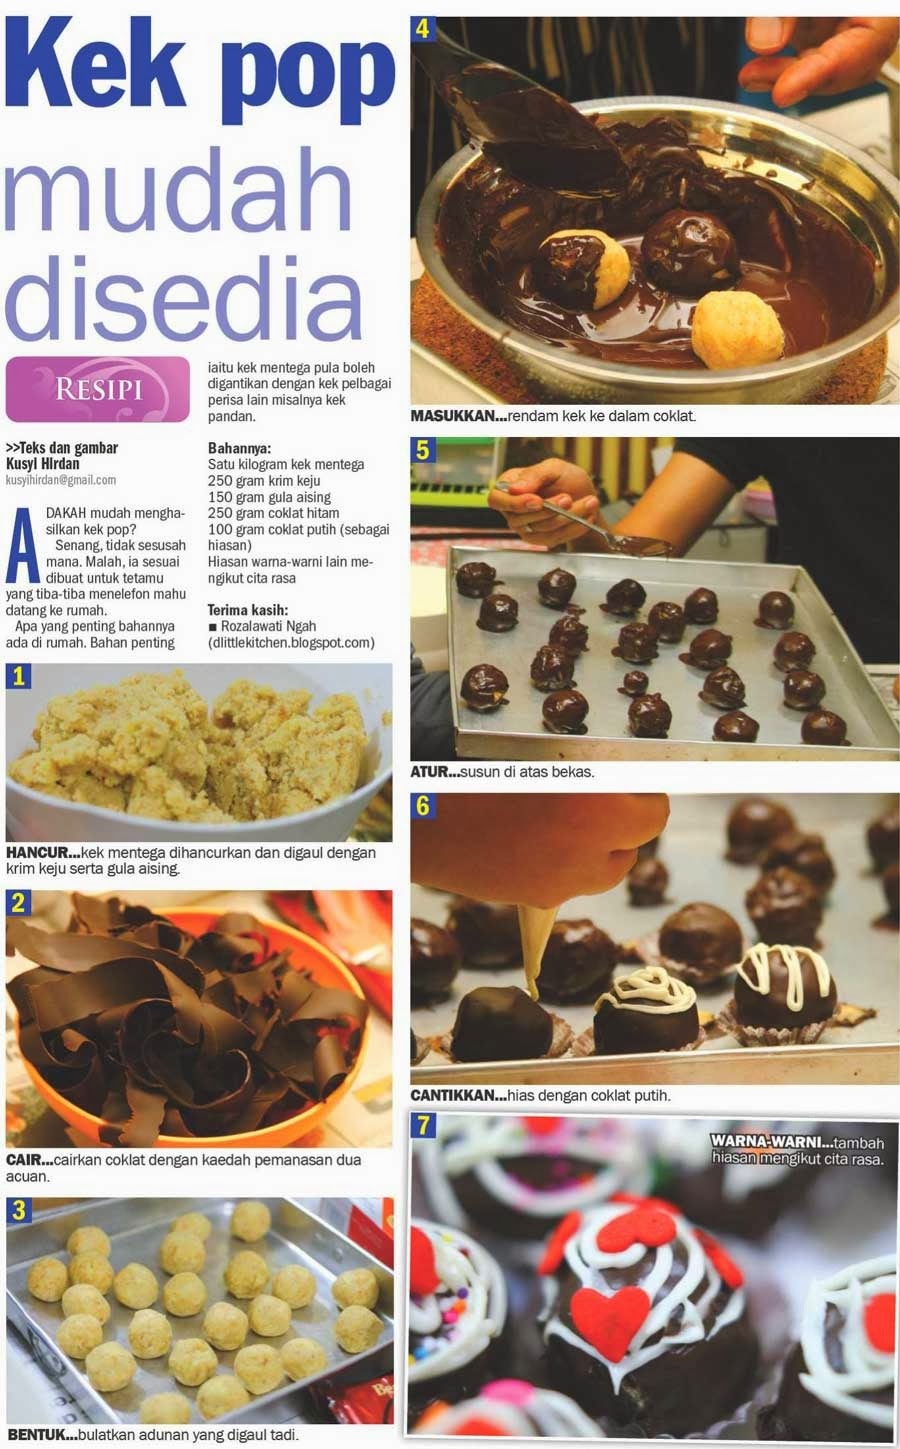 d'little kitchen in Harian Metro II